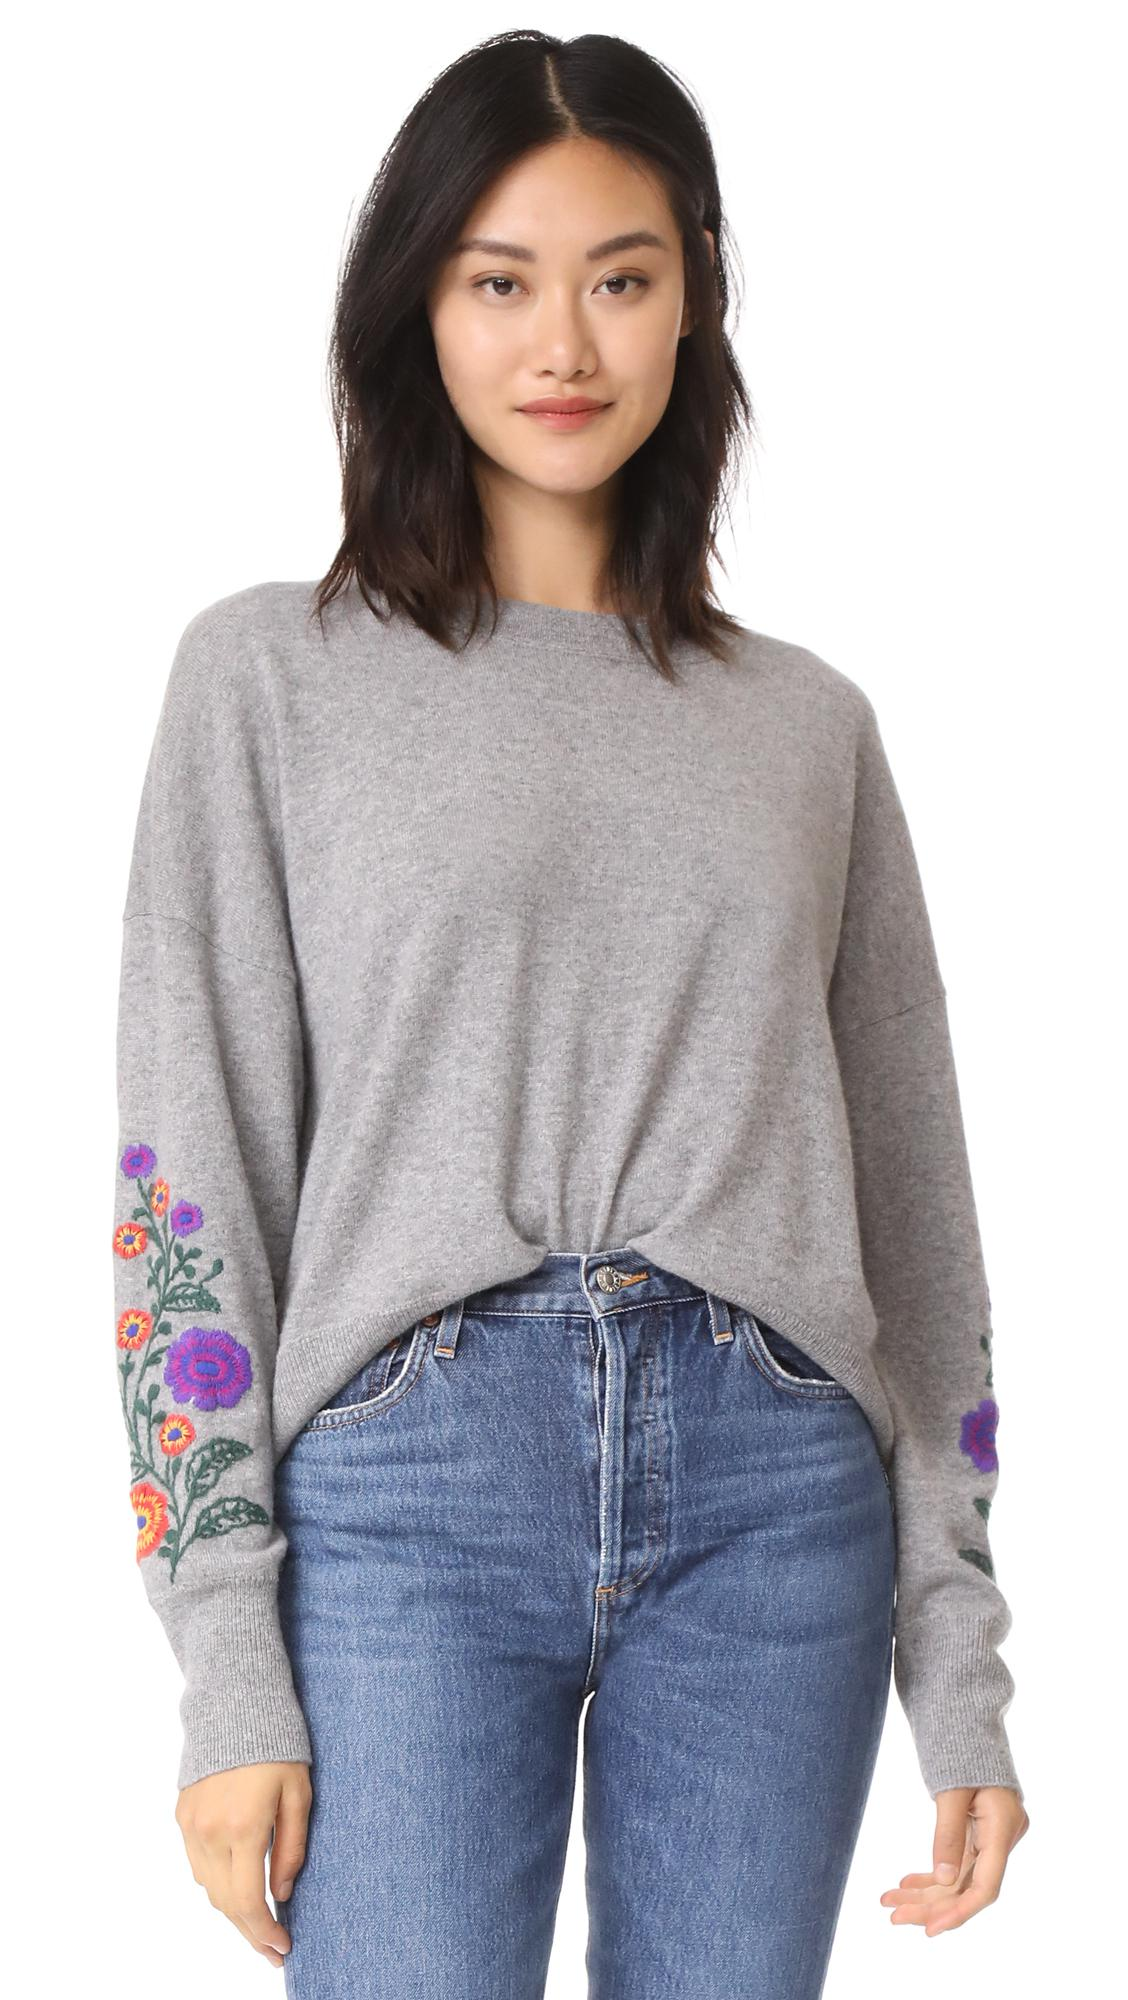 Pretty sweater made of pure % cashmere by Cashmere Boutique. This cashmere sweater with long sleeves and V neck is available in many colors and sizes. It .